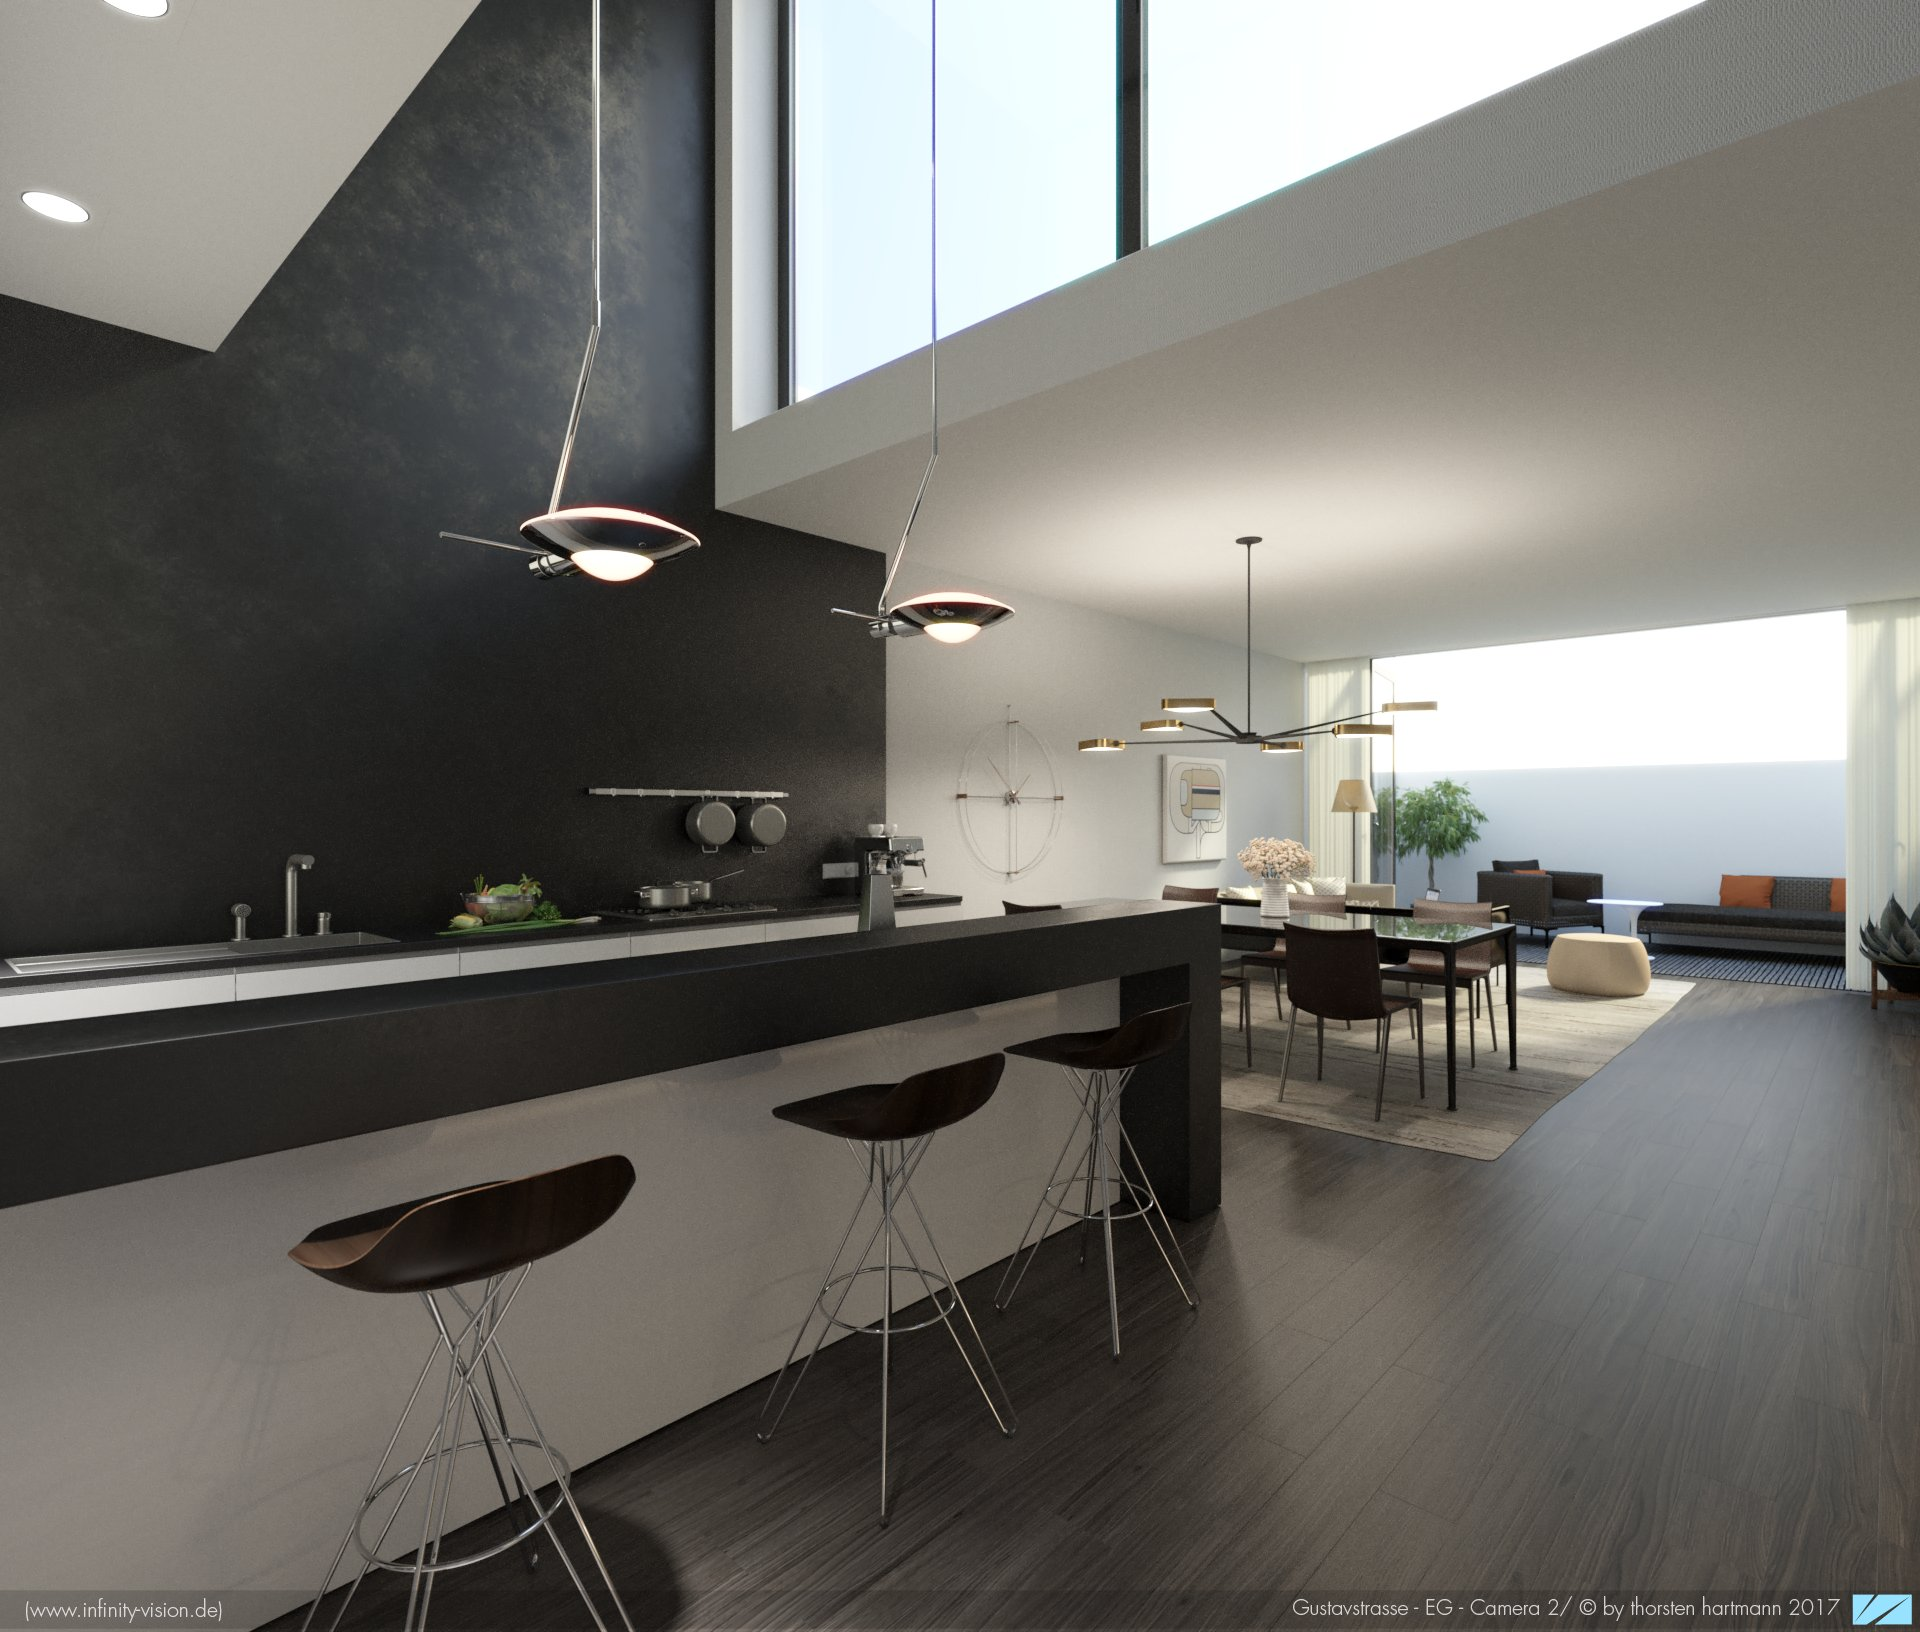 Gustavstrasse/ kitchen + dining room